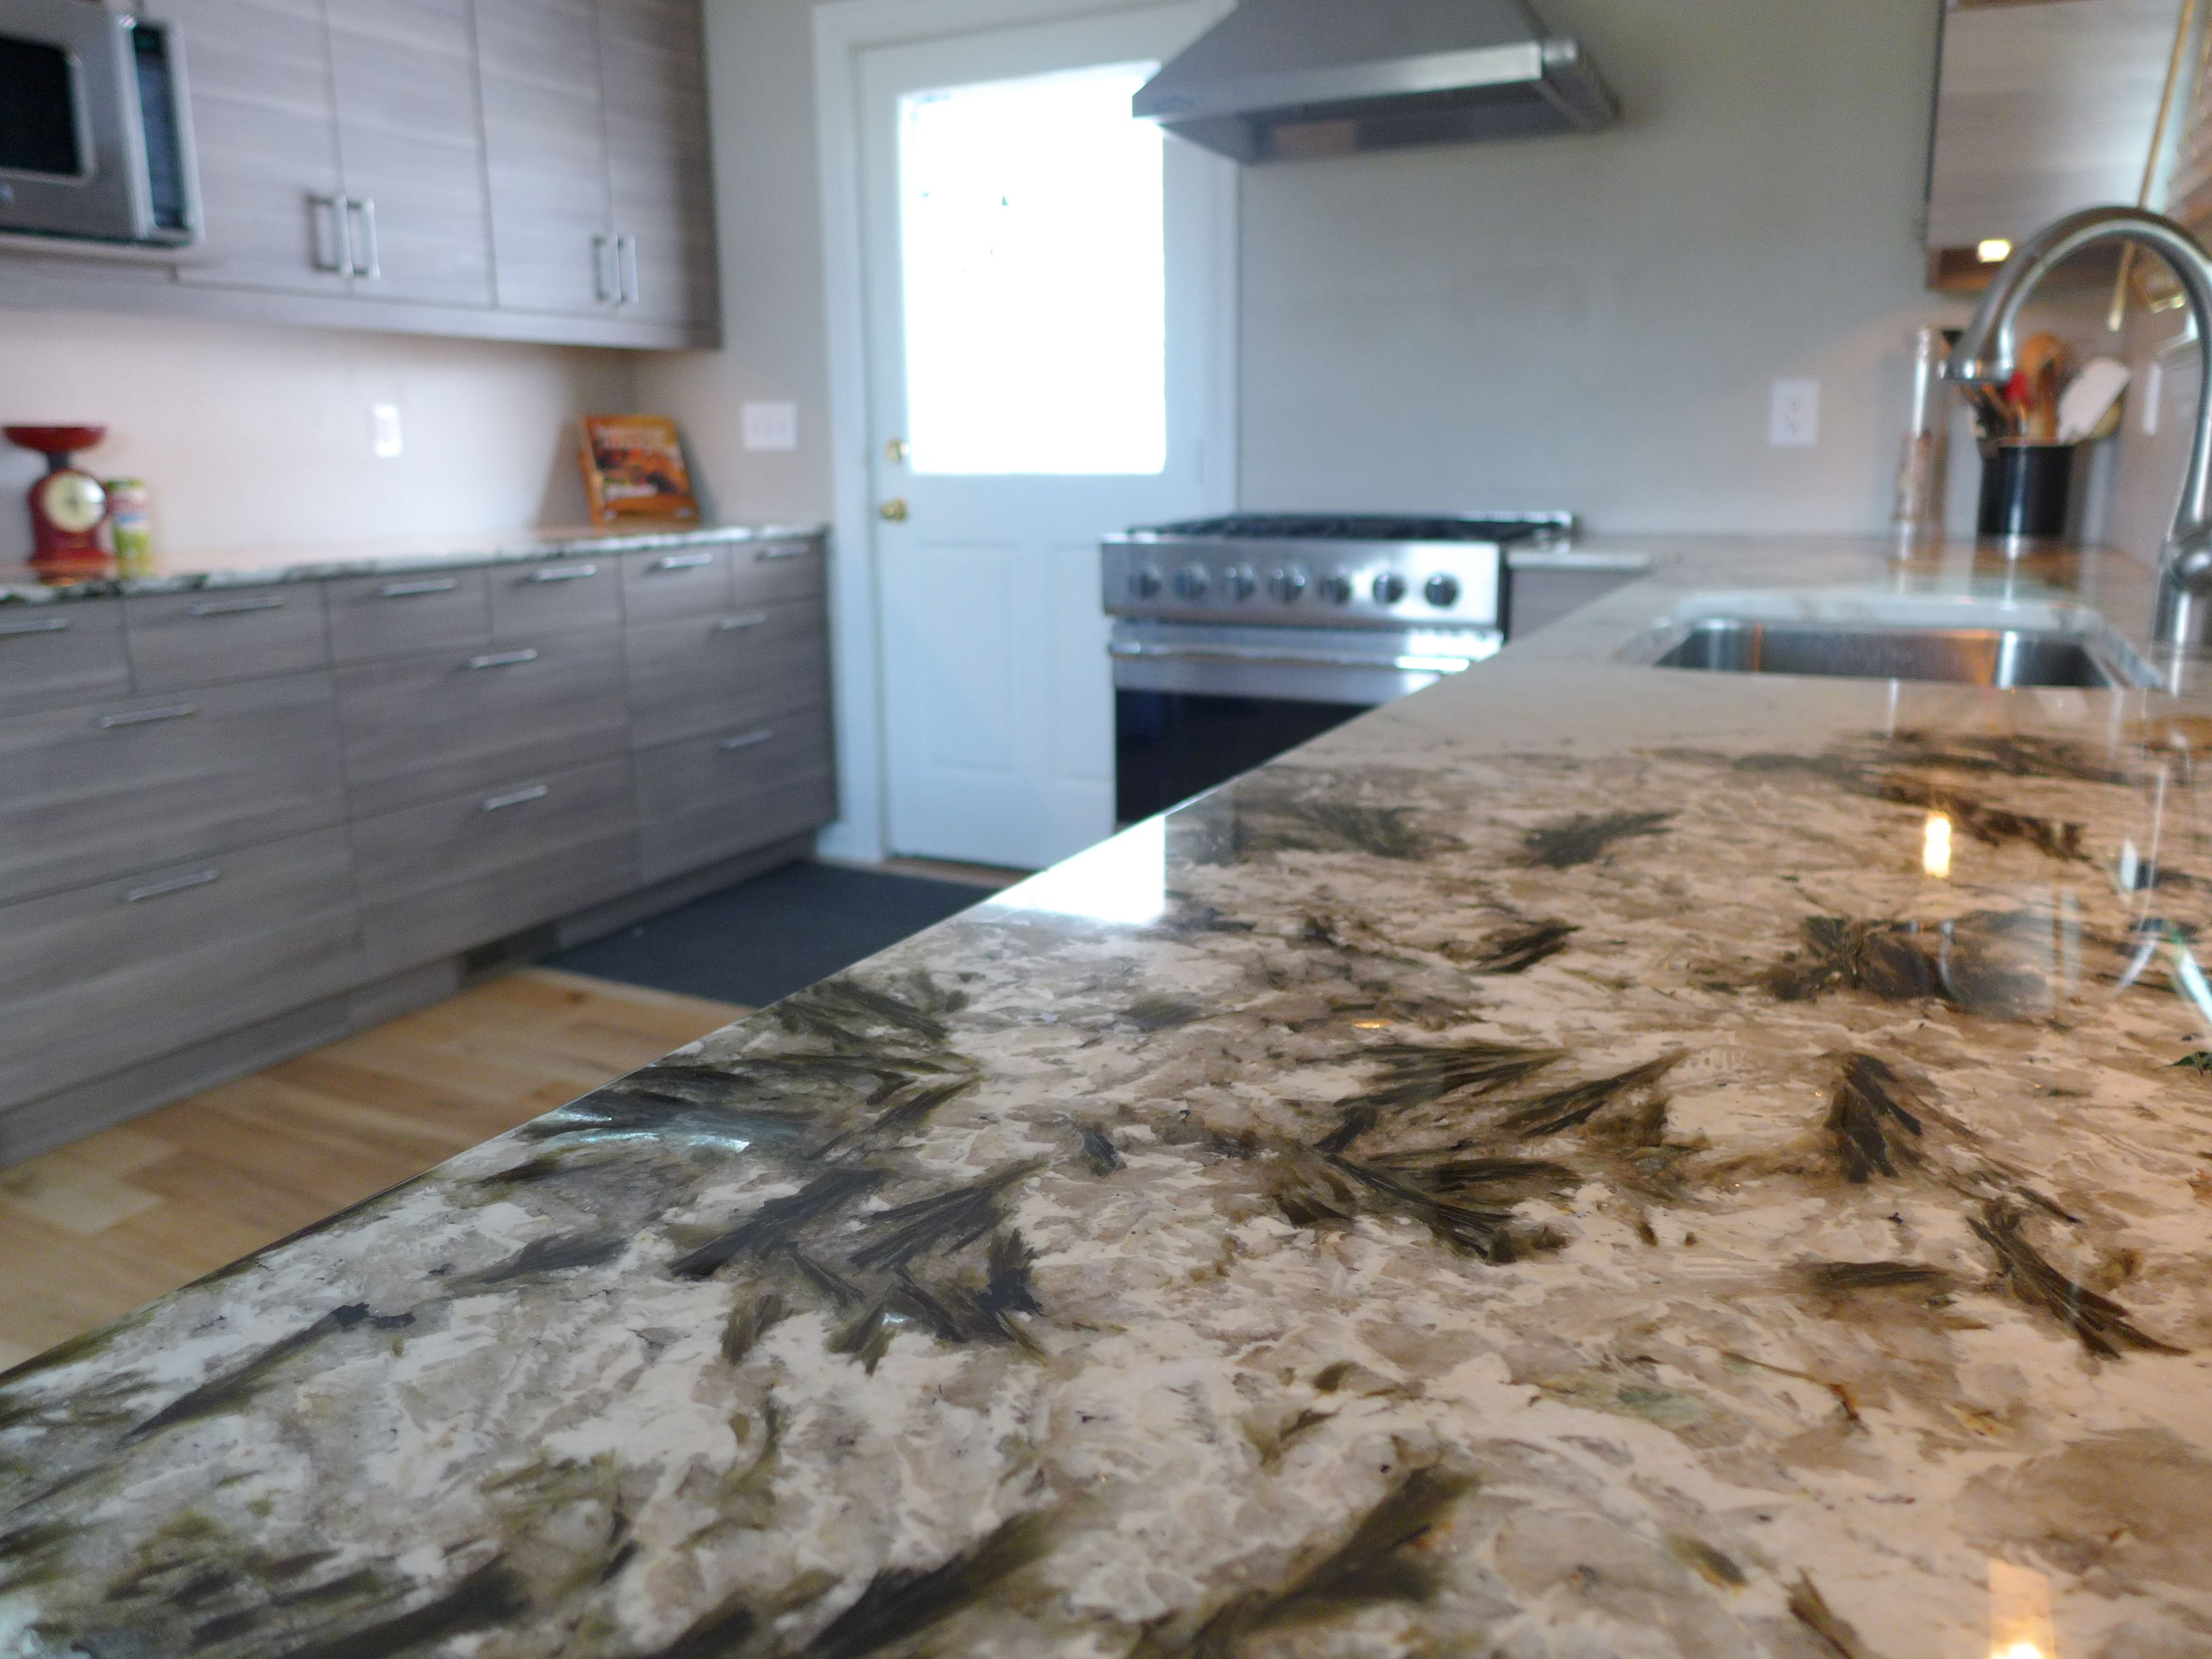 Pin By Accent Countertops On Kitchens By Accent Interiors White Granite Countertops Rustic Kitchen Granite Countertops